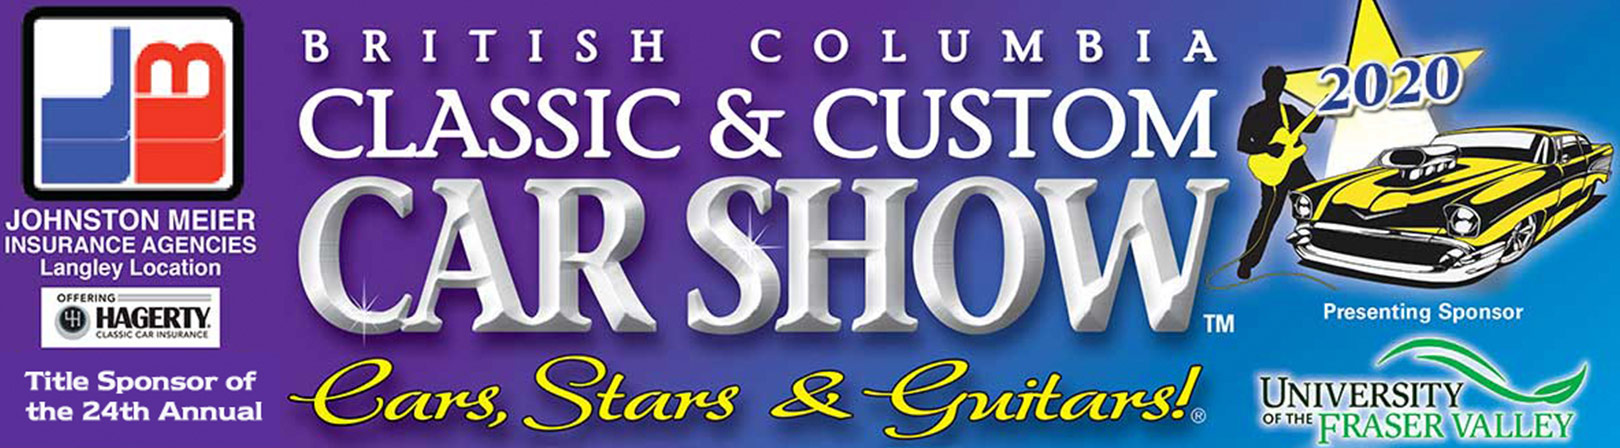 24th Annual British Columbia Classic & Custom Car Show